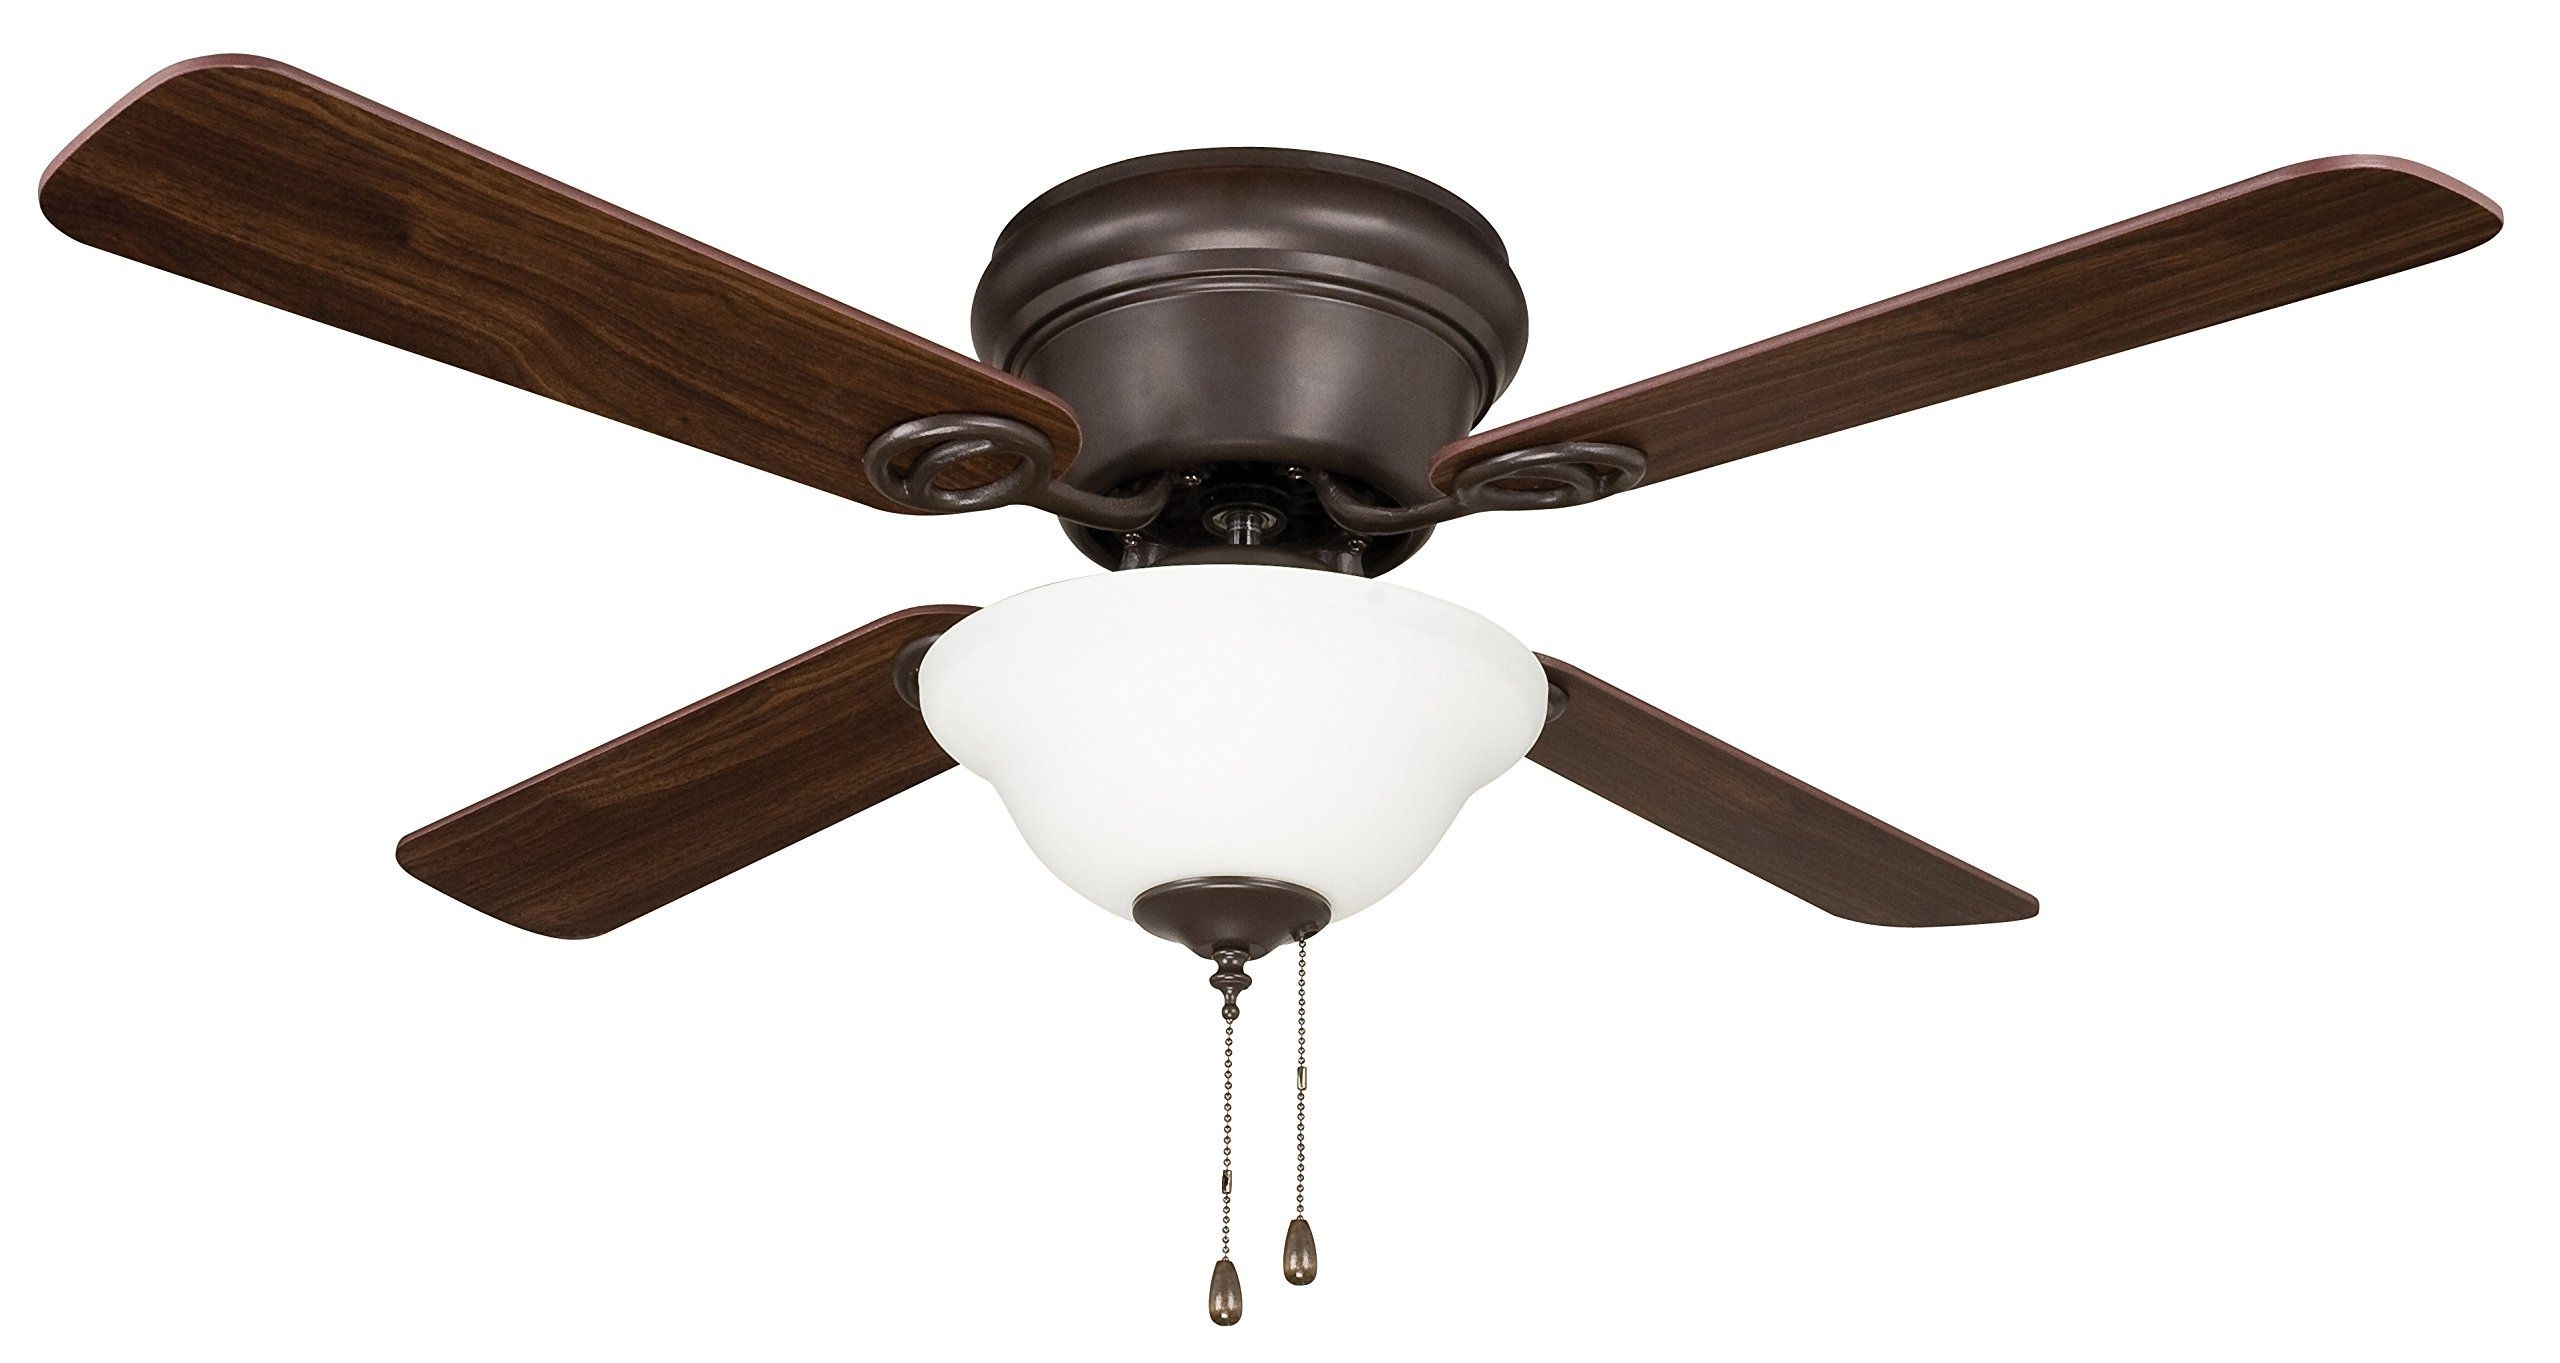 Litex Wc42Orb4C1 Wyman Collection 42 Inch Ceiling Fan With Five Regarding Most Recently Released 42 Inch Outdoor Ceiling Fans With Lights (Gallery 12 of 20)